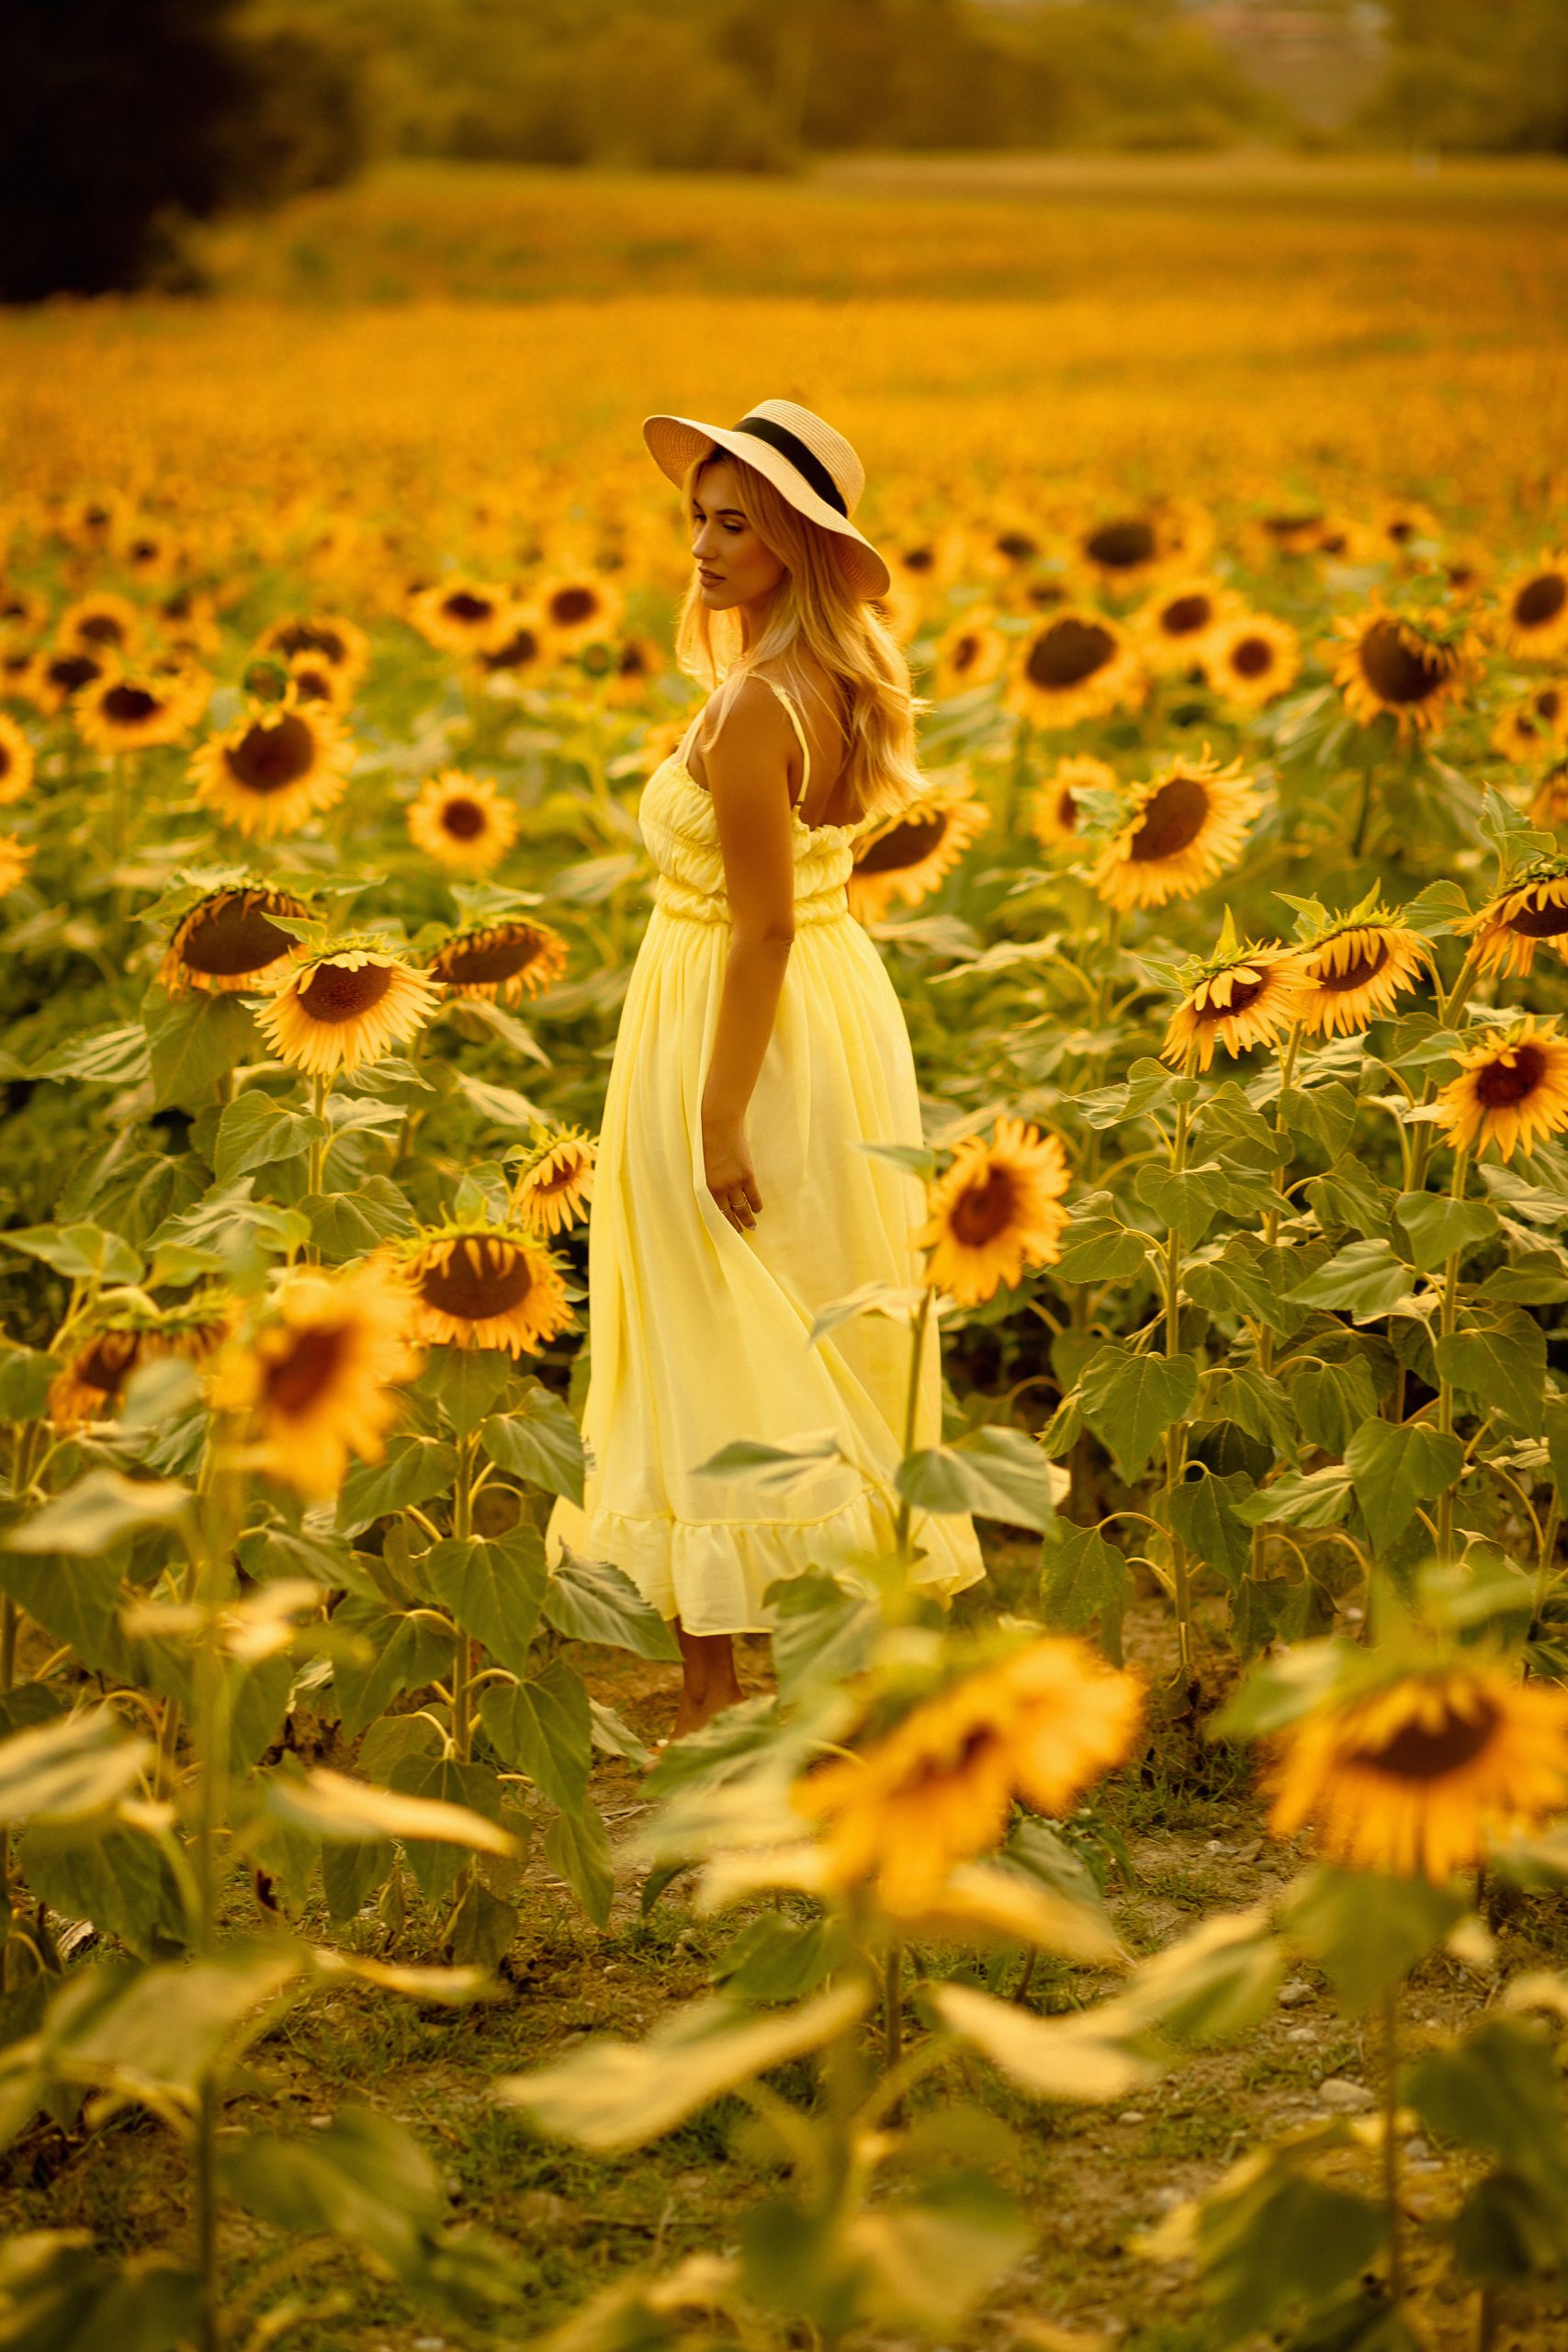 Beautiful girl looking at the sunflowers